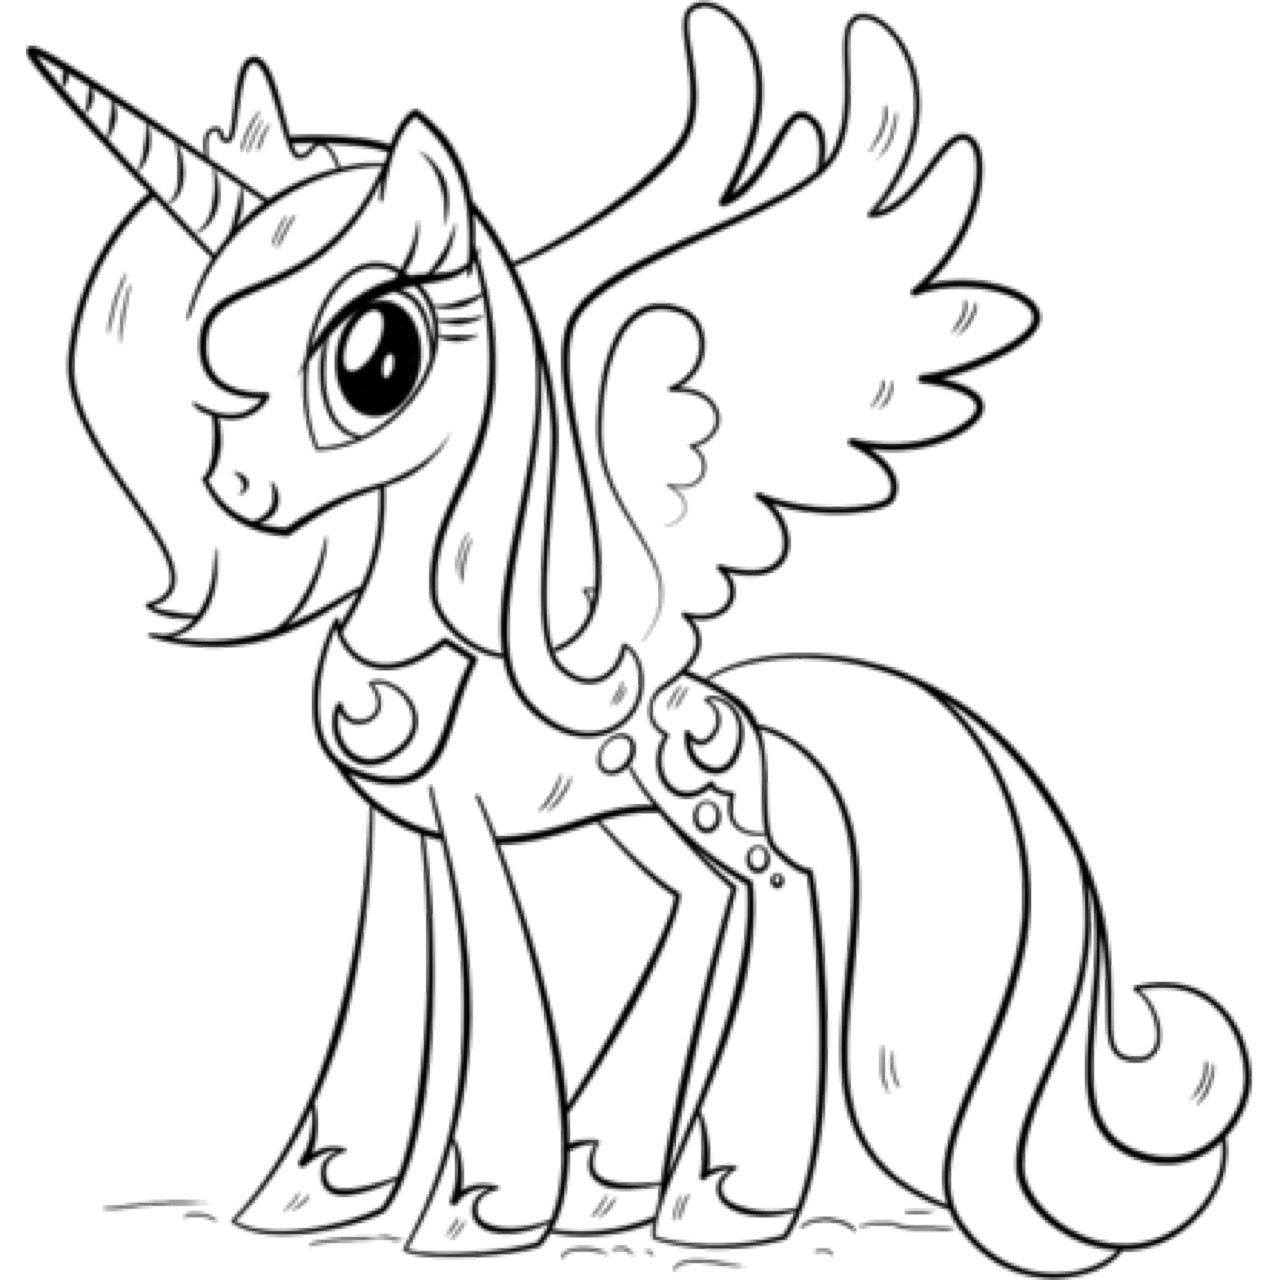 Pin de Deborah Keeton en Coloring pages | Pinterest | Unicornio